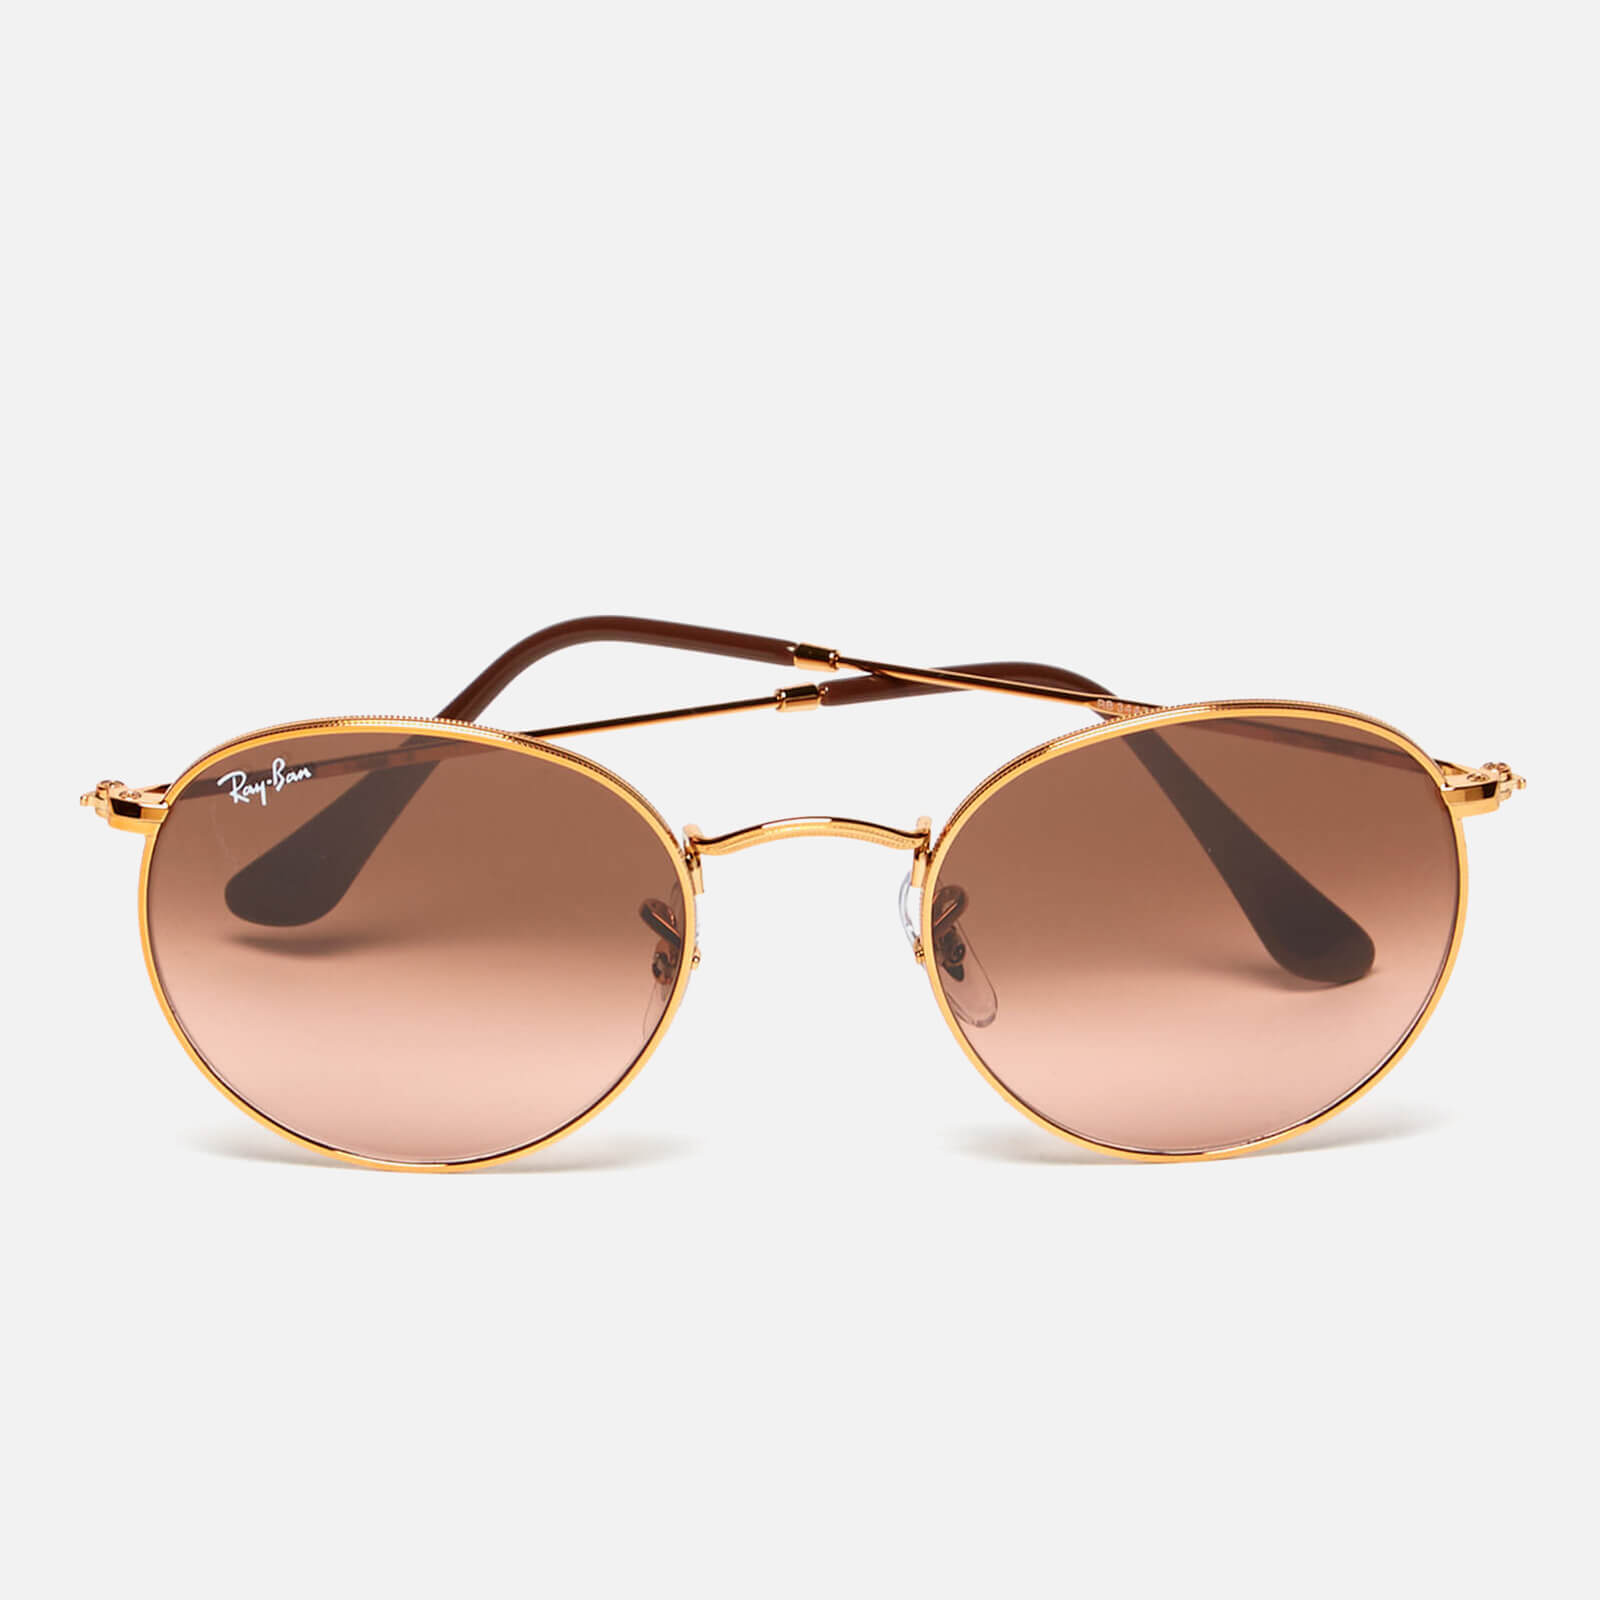 38e35c90b31fd Ray-Ban Round Flat Lenses Bronze Copper Frame Sunglasses - Pink Brown  Gradient - Free UK Delivery over £50